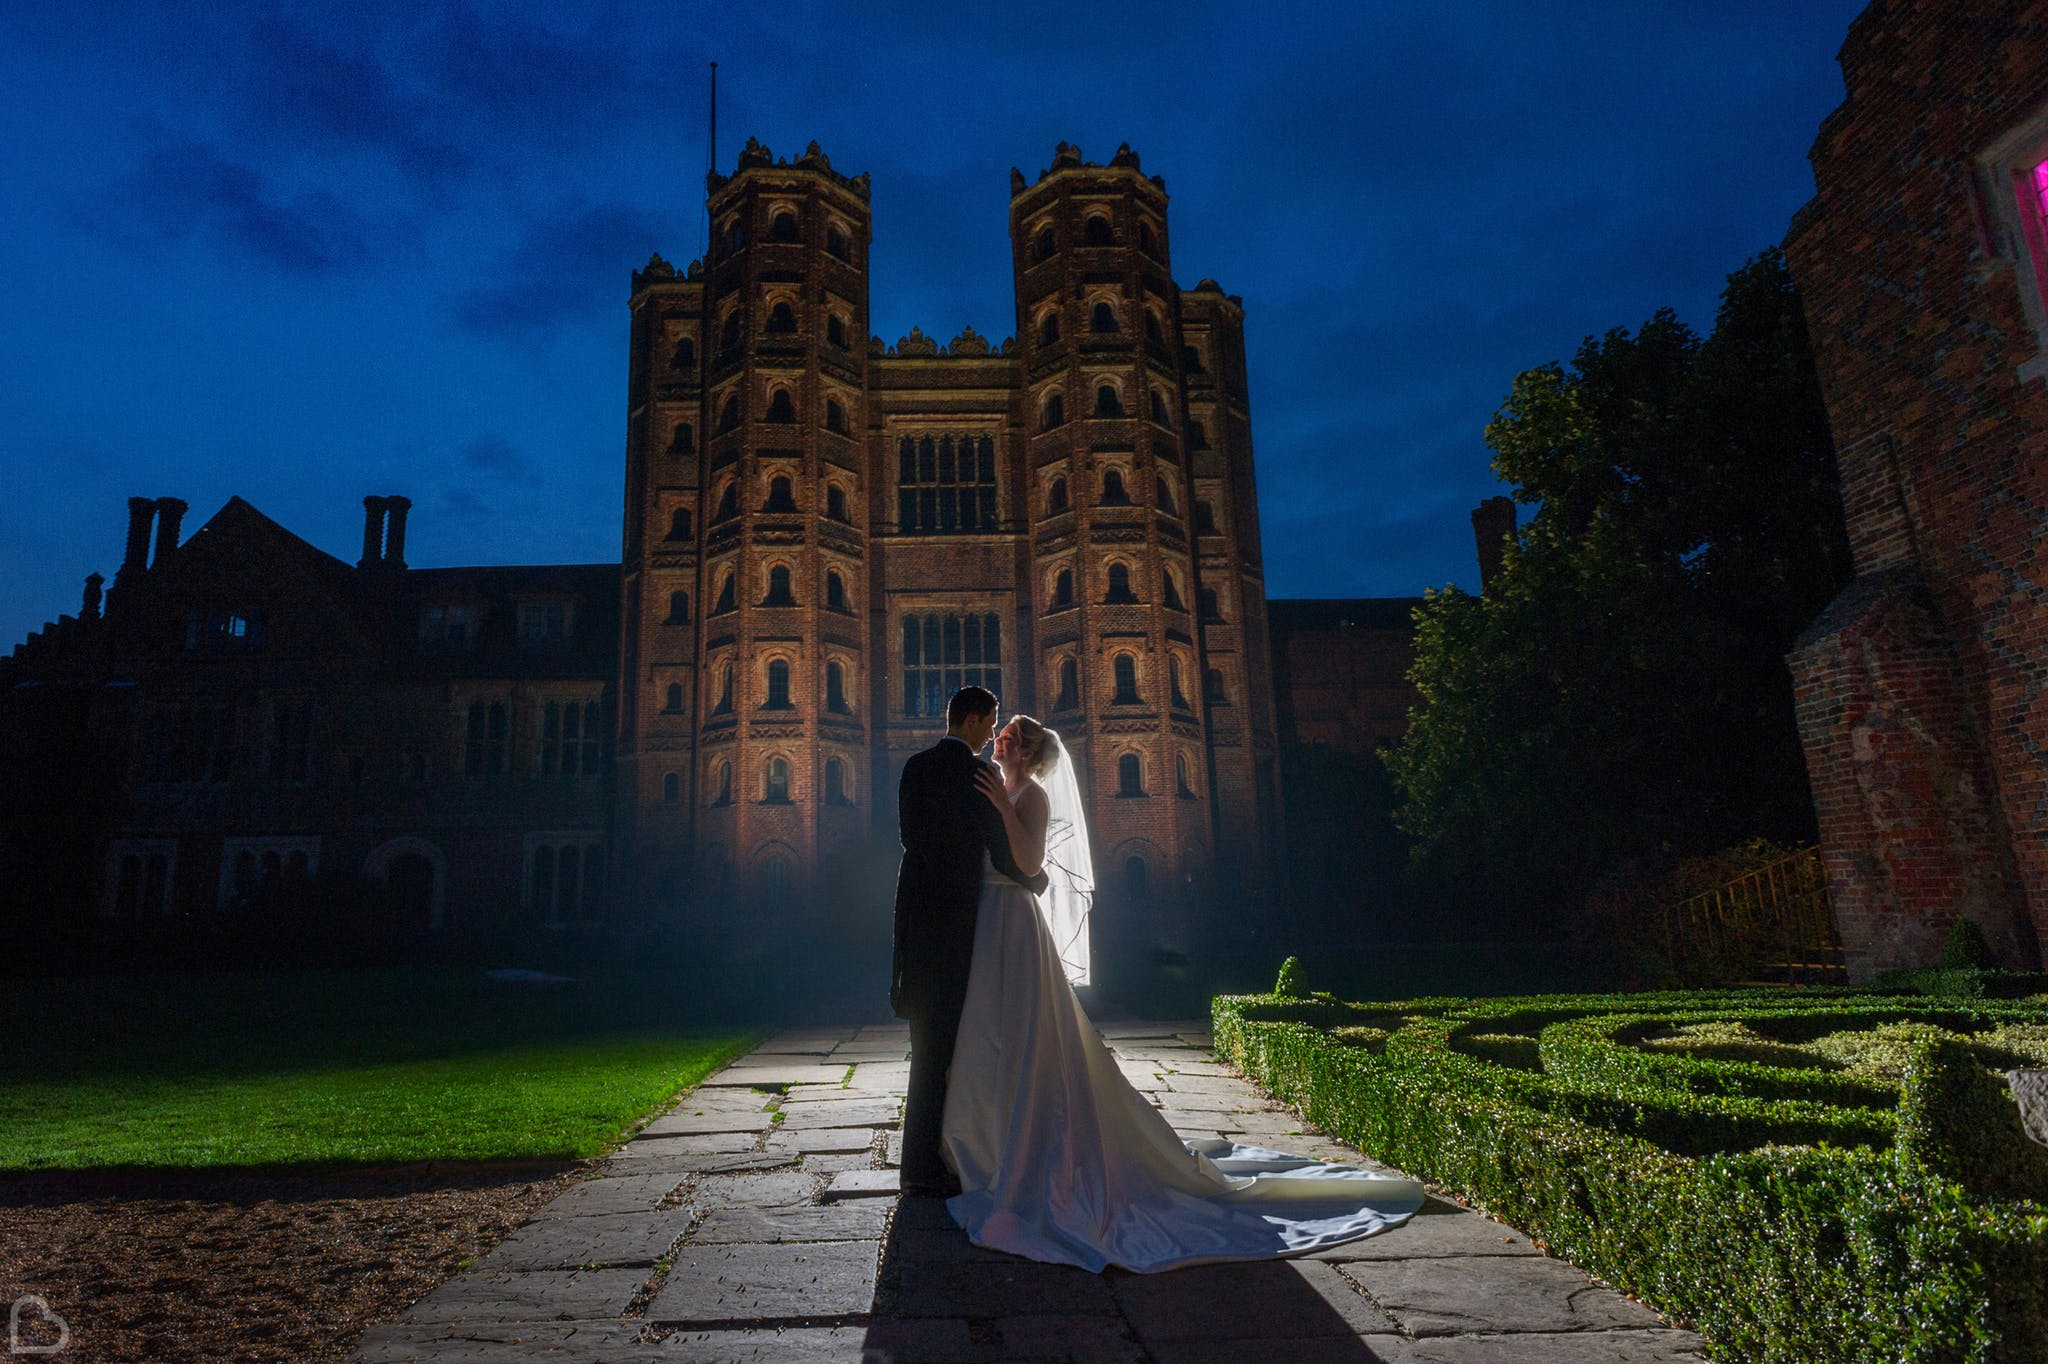 layer marney tower at night